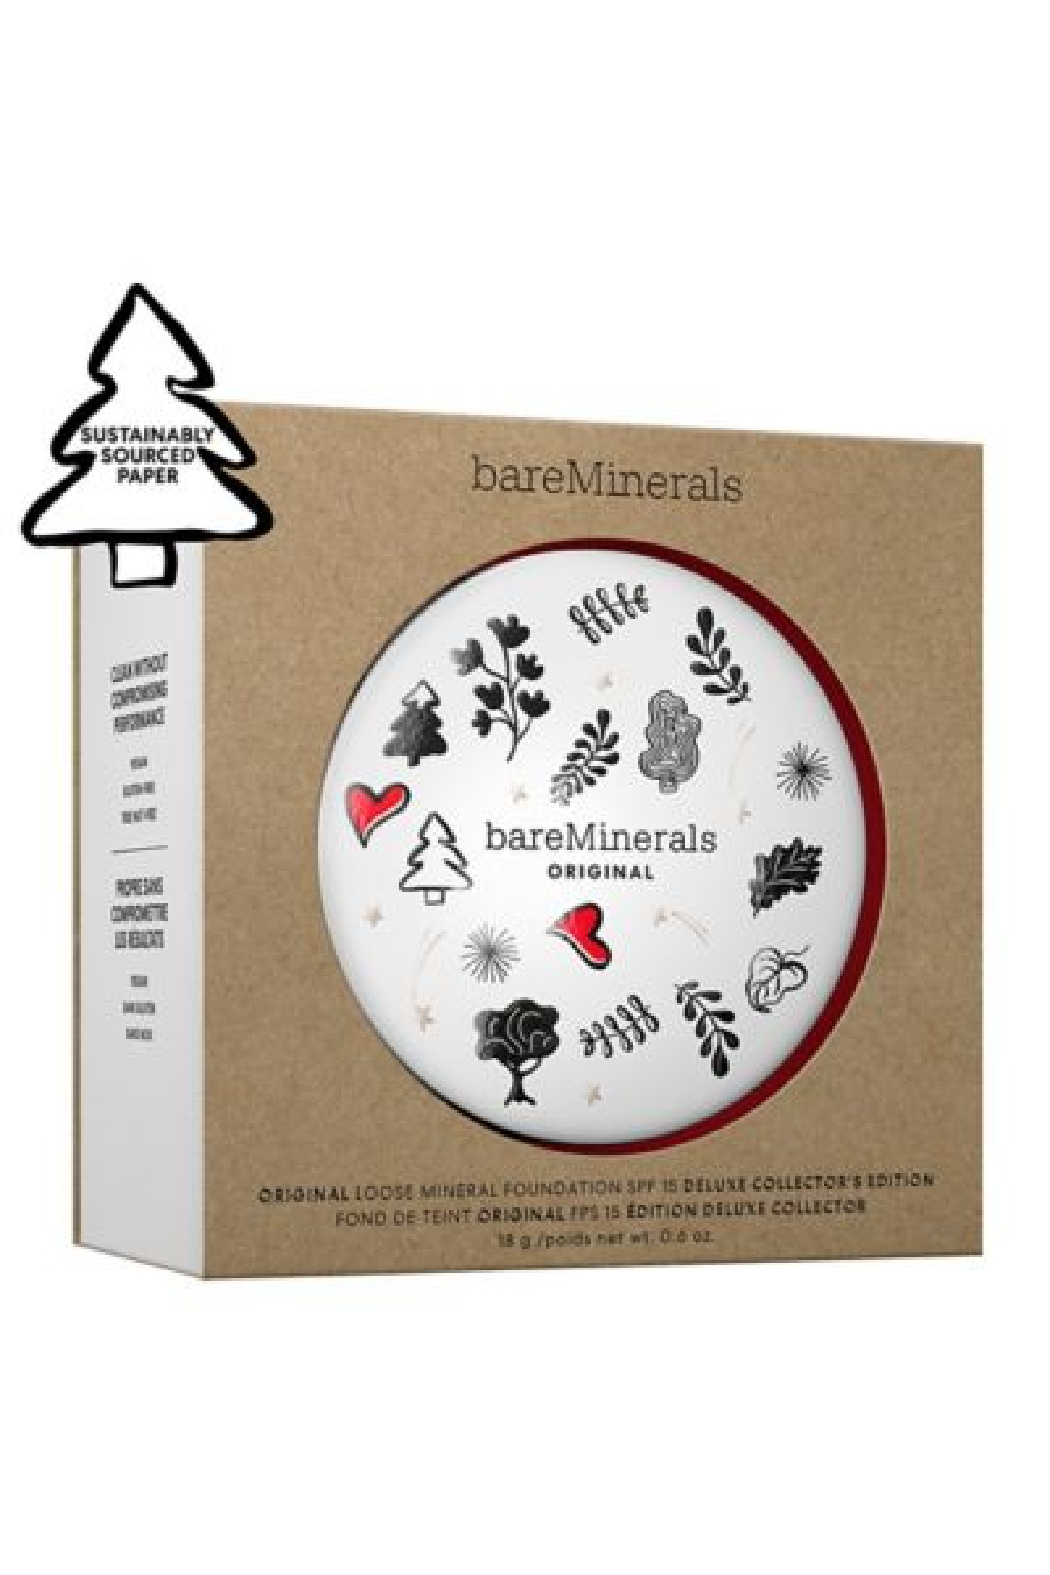 bareMinerals ORIGINAL LOOSE MINERAL FOUNDATION DELUXE COLLECTOR'S EDITION - Front Full Image